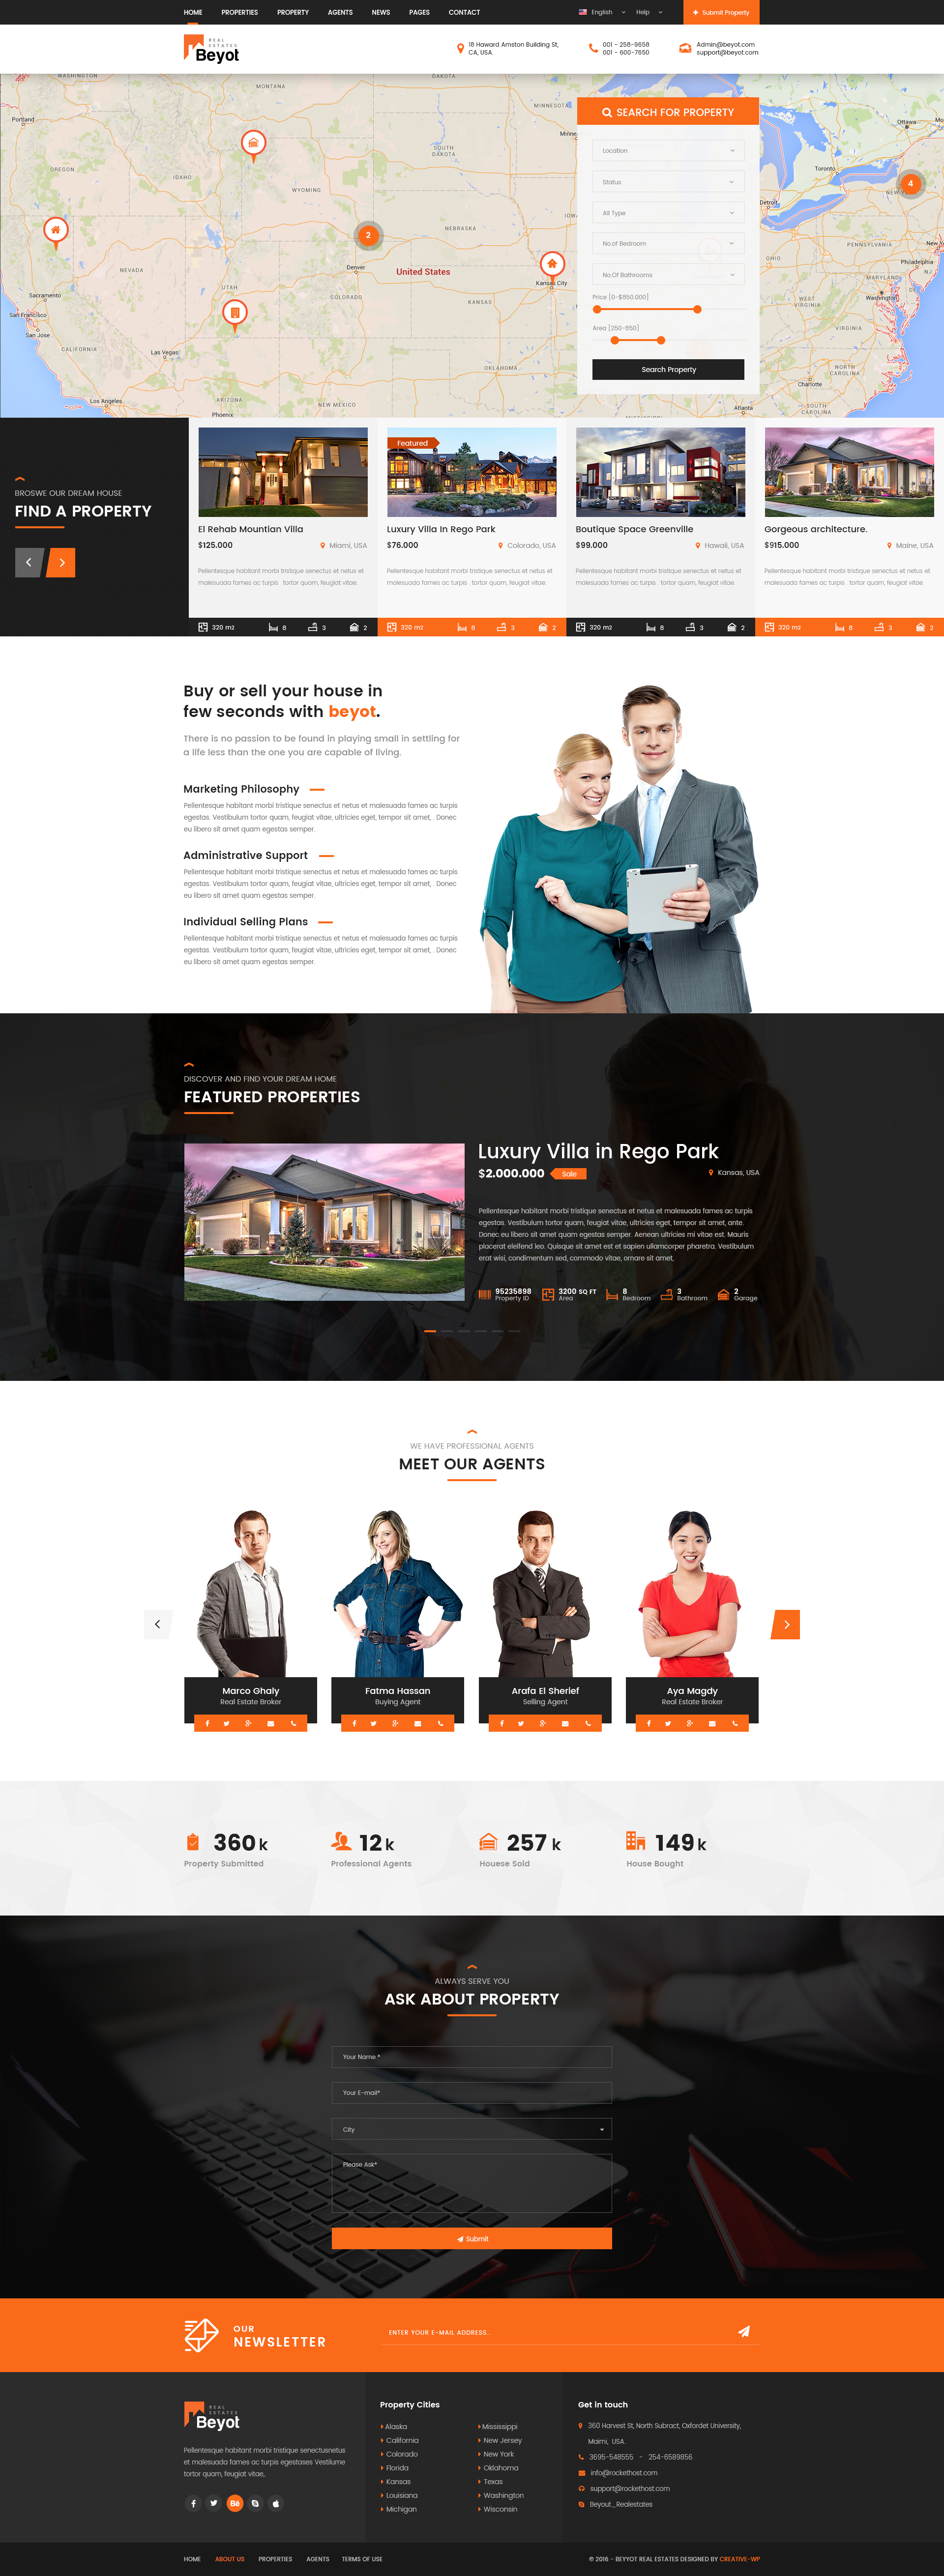 Beyot - Real Estate PSD Template by creative-wp | ThemeForest